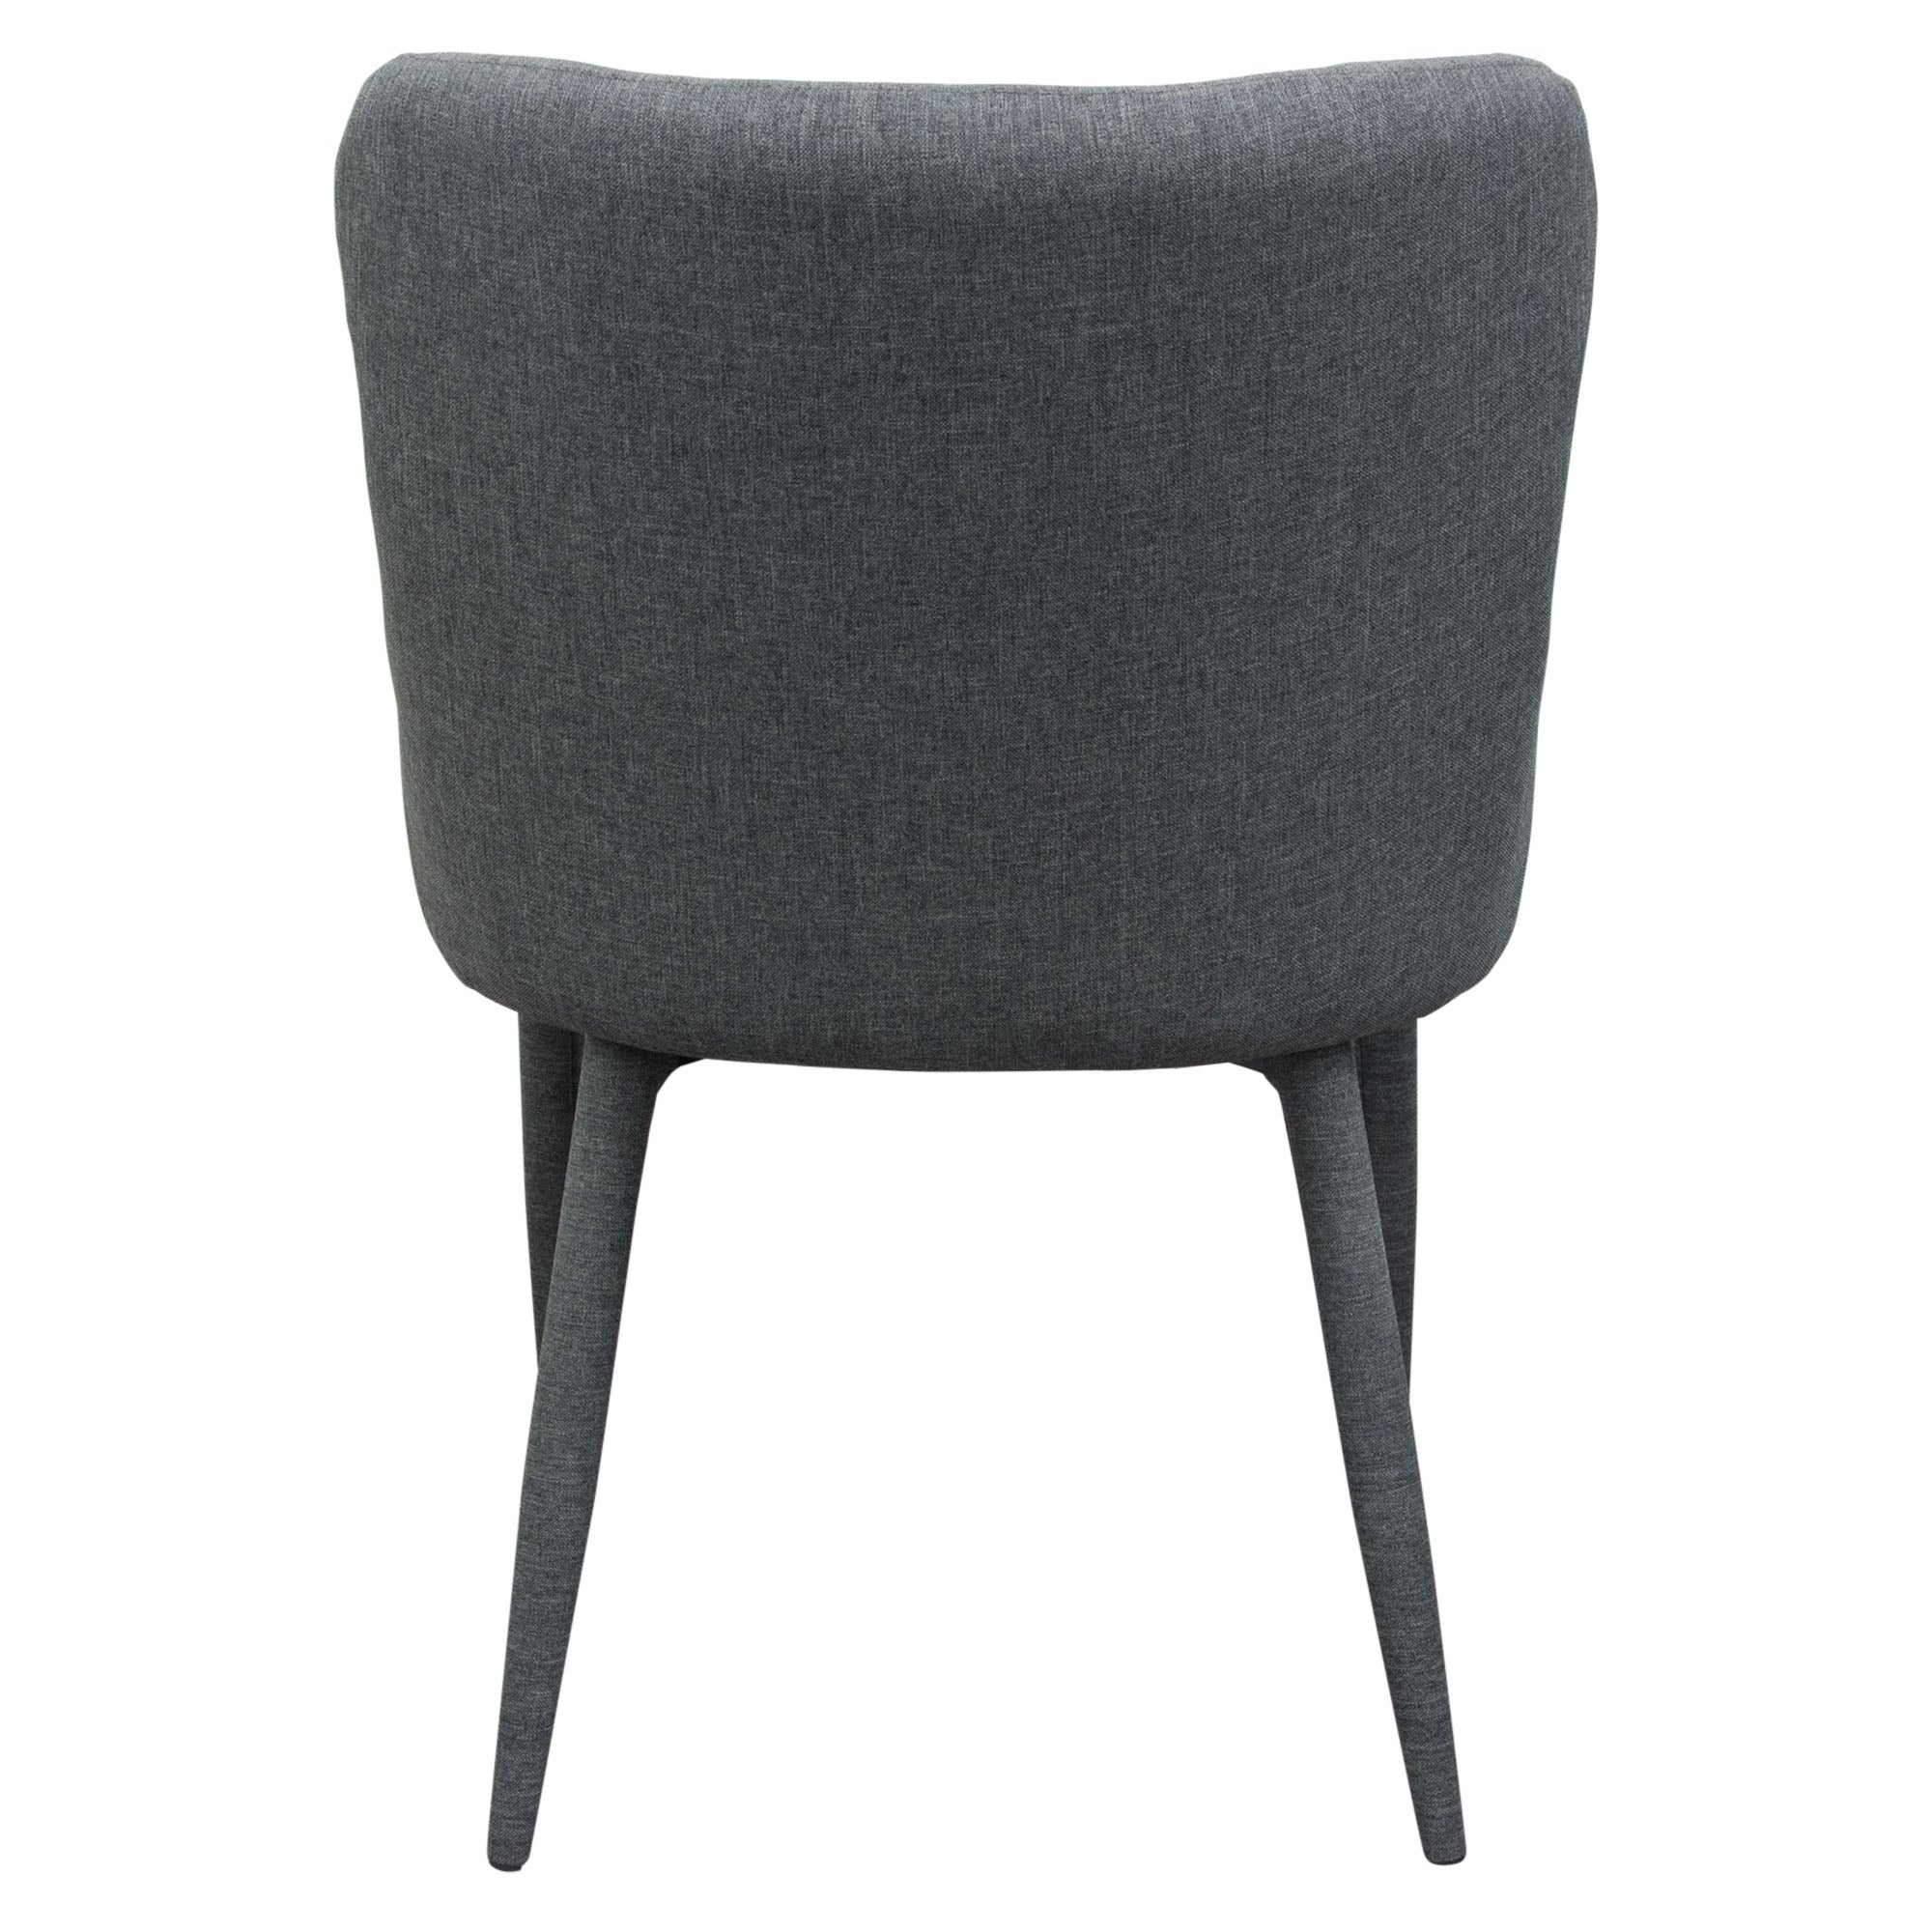 Set of (2) Savoy Accent Chair - Graphite